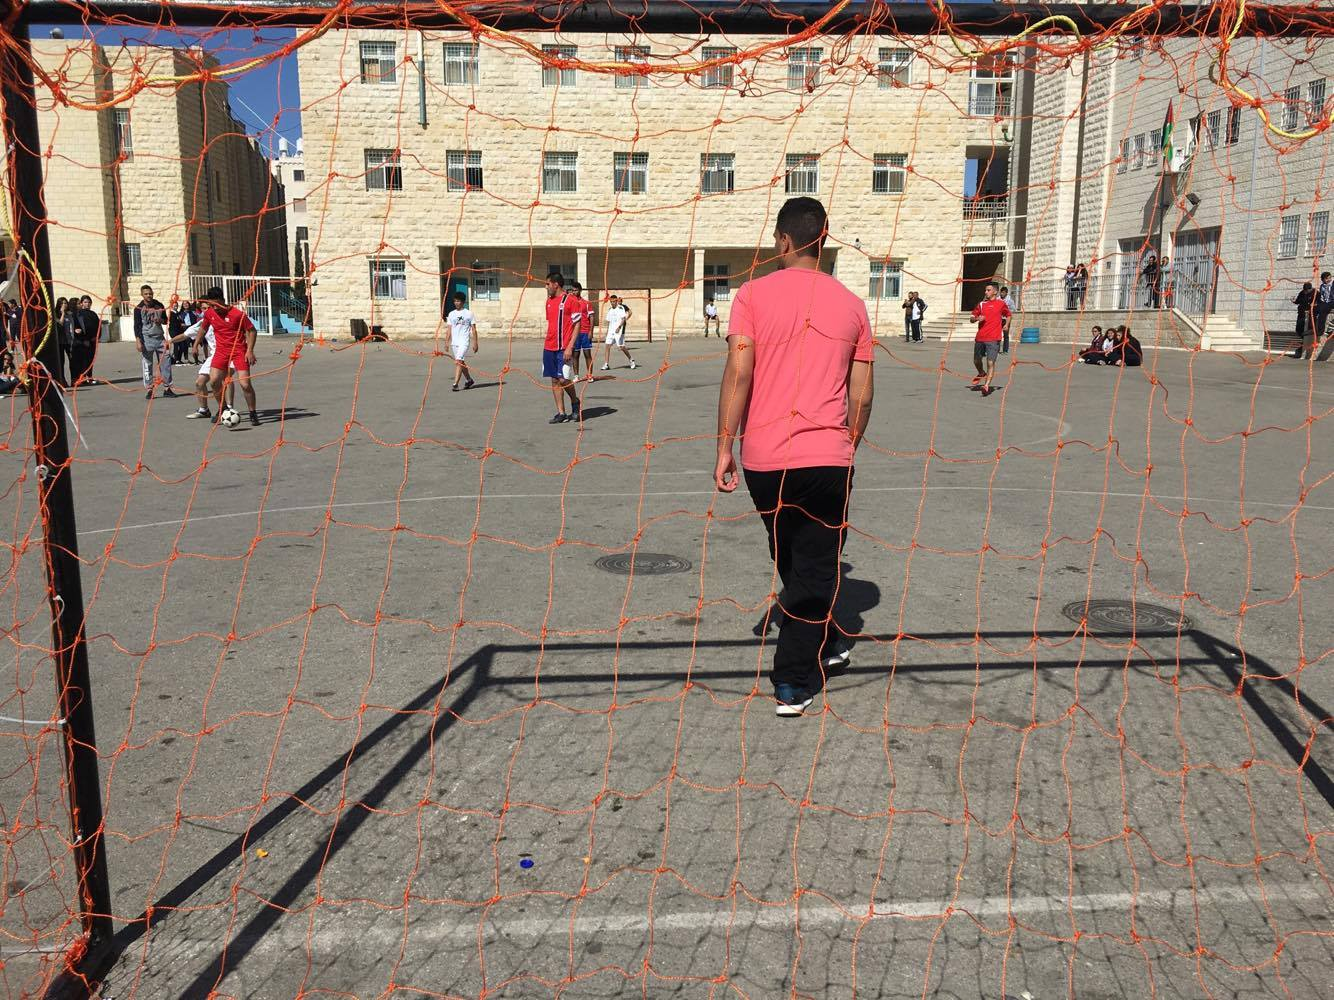 Ramallah – the Ahliya College in Ramallah organizes a Football